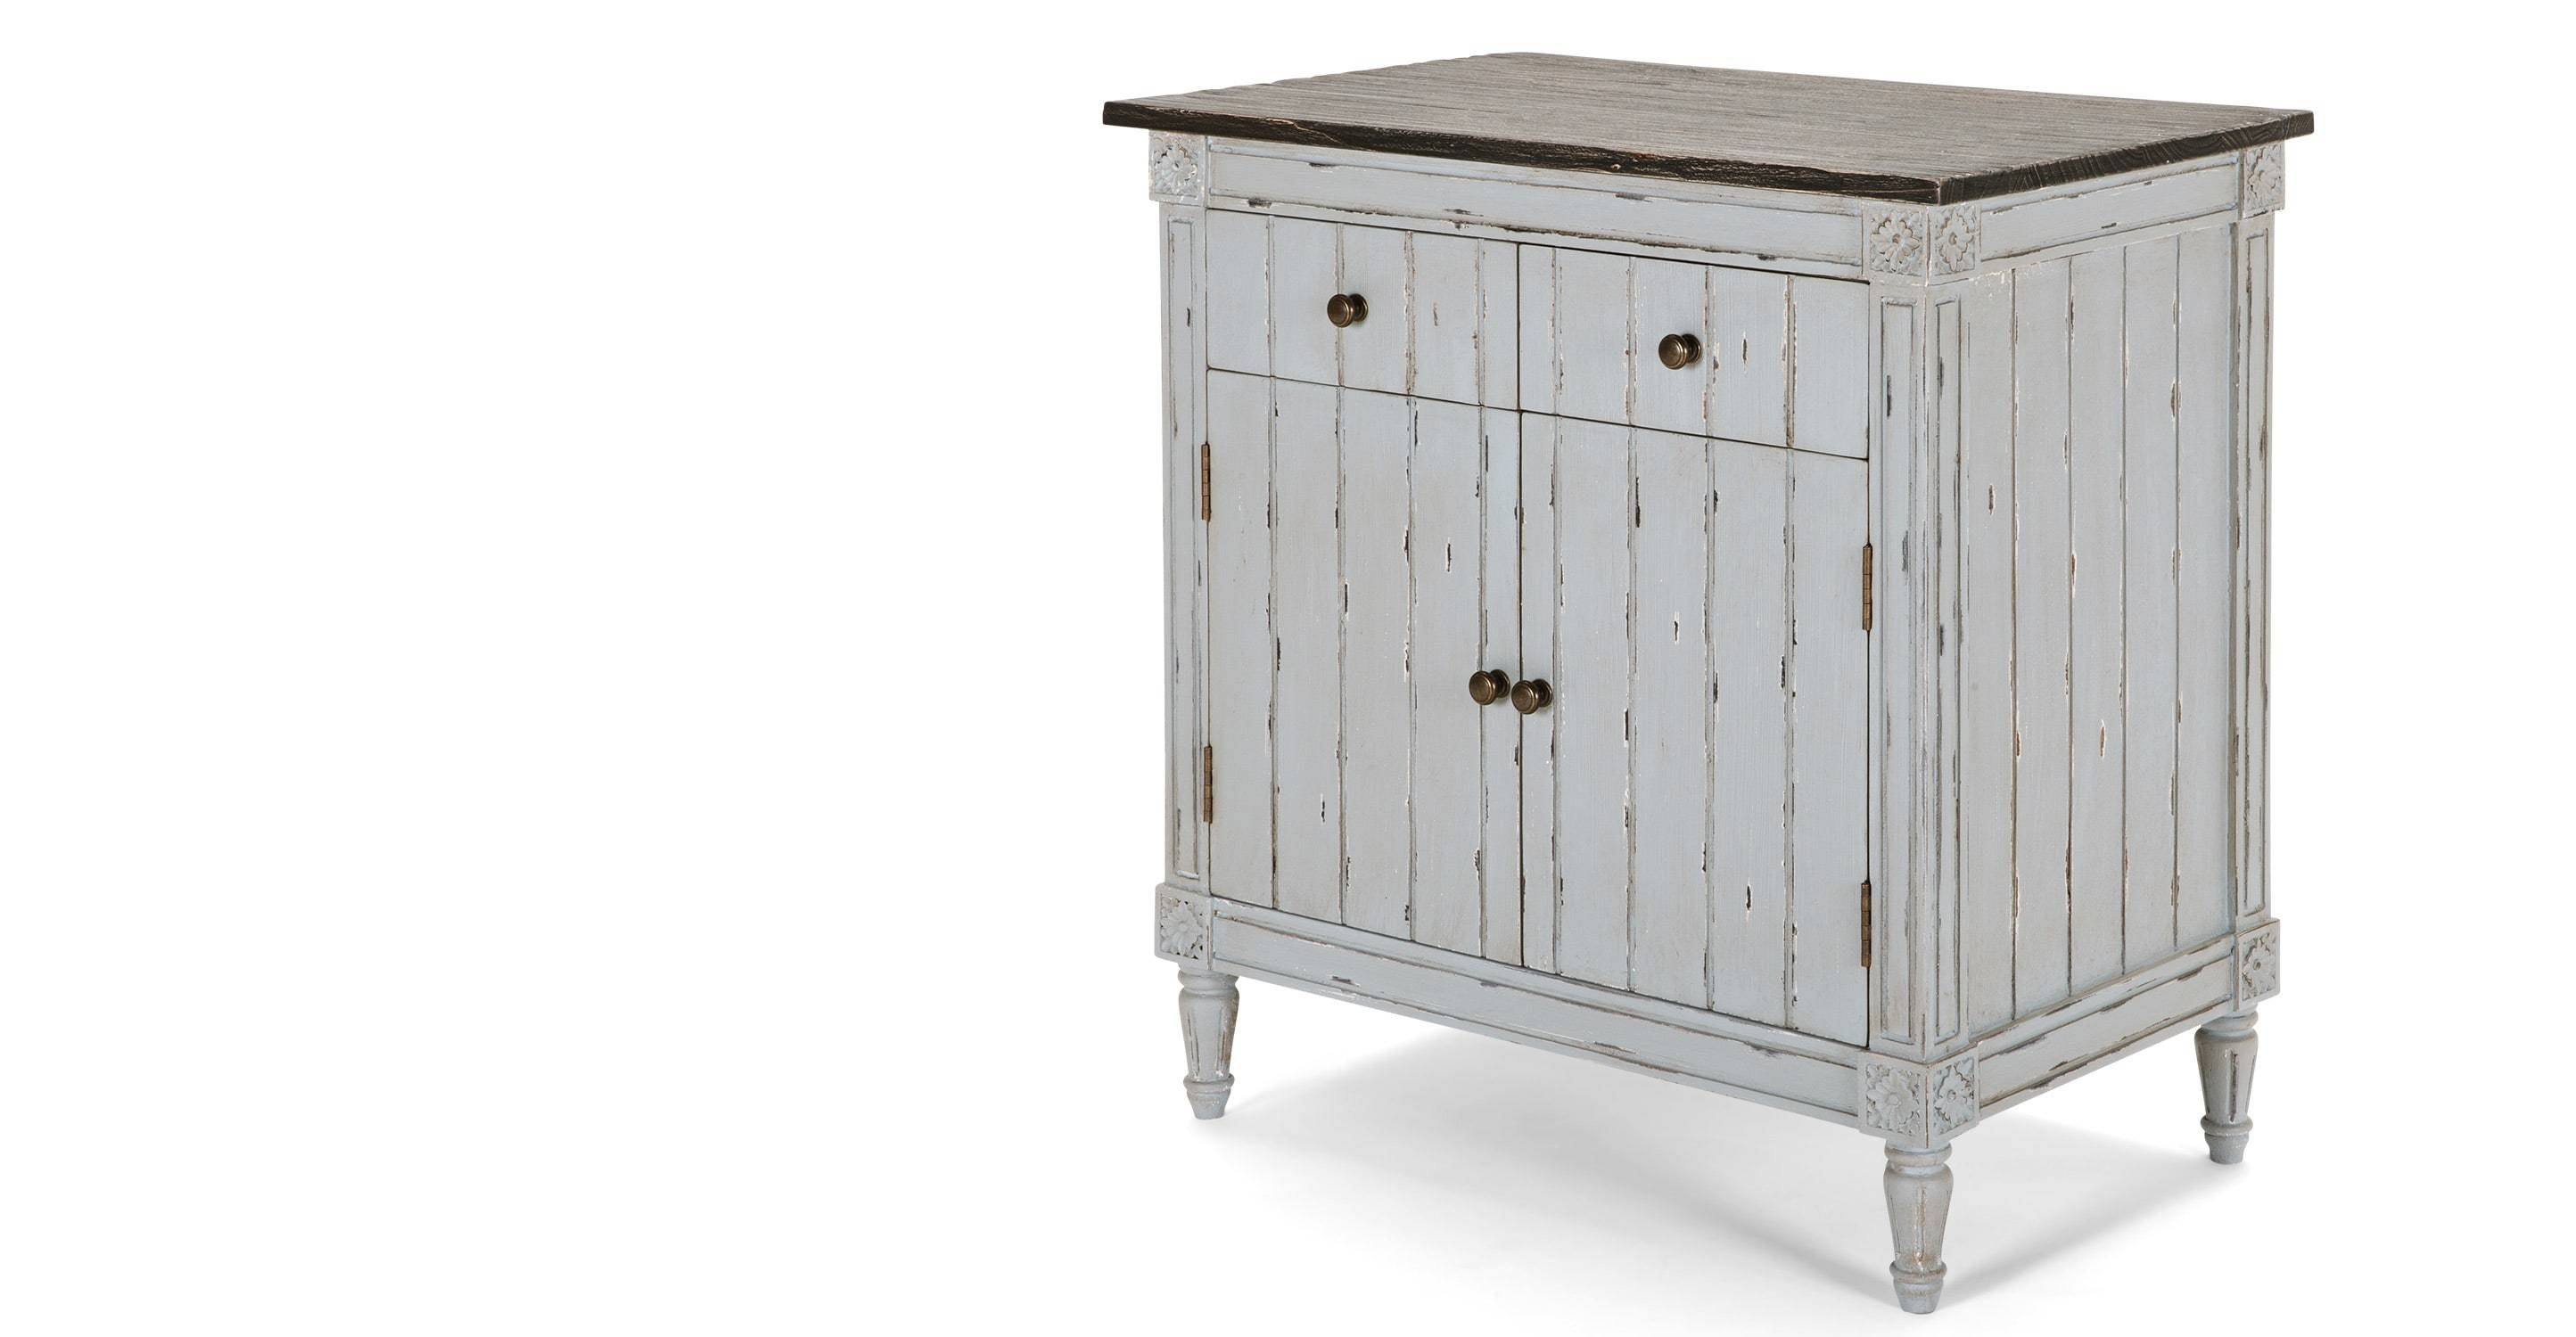 New Sideboard Buffet Server   Bjdgjy Within Distressed Sideboards (Photo 10 of 15)